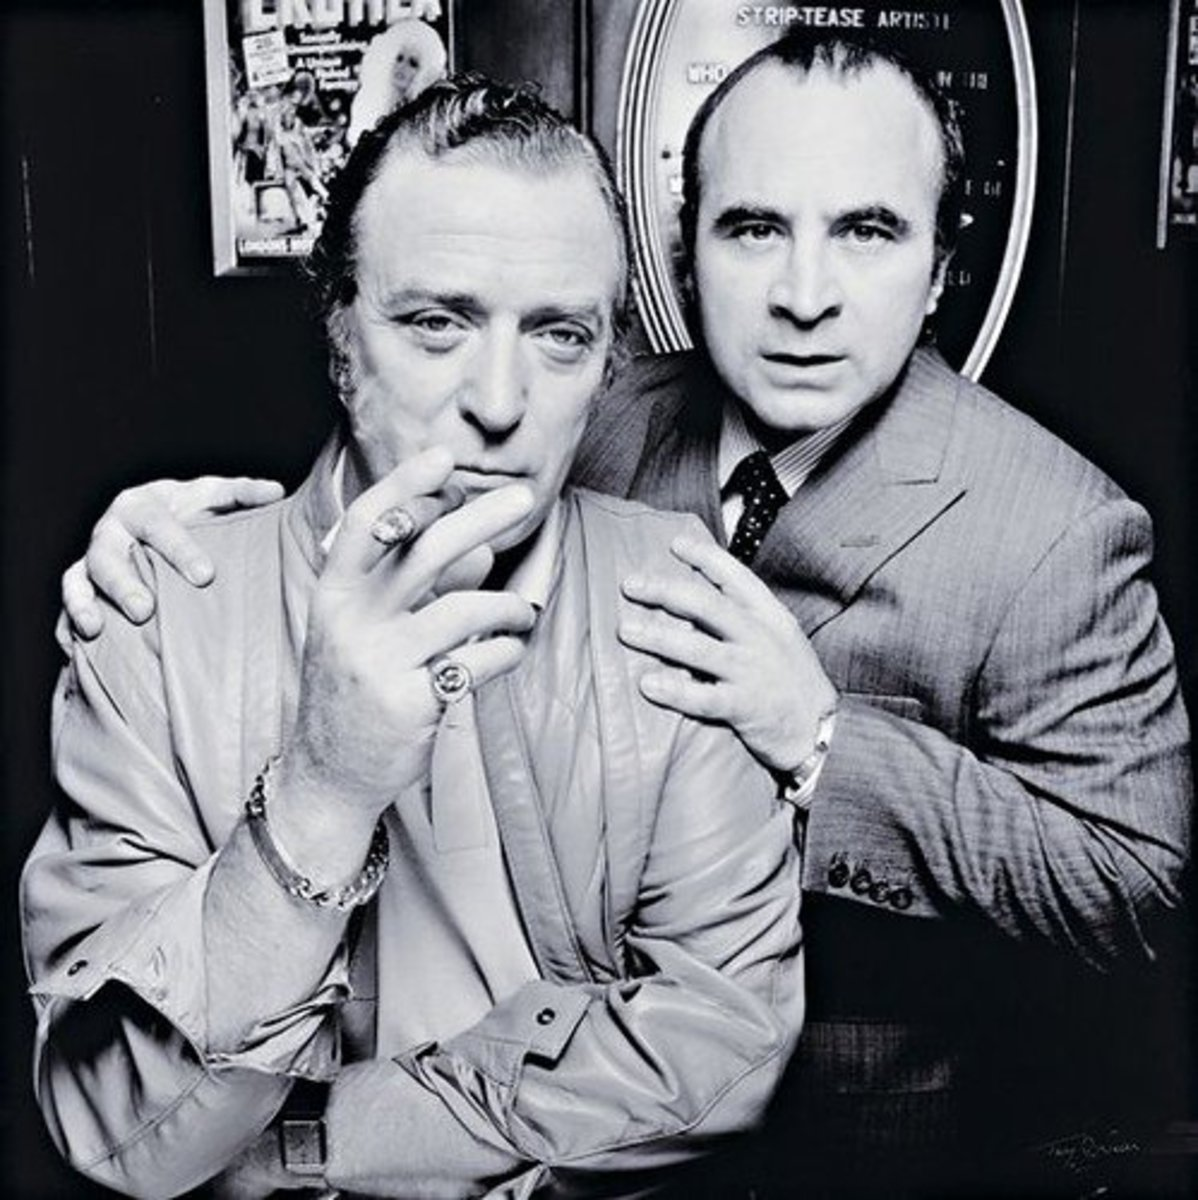 Caine and Hoskins, Michael and Bob, Just the Job!